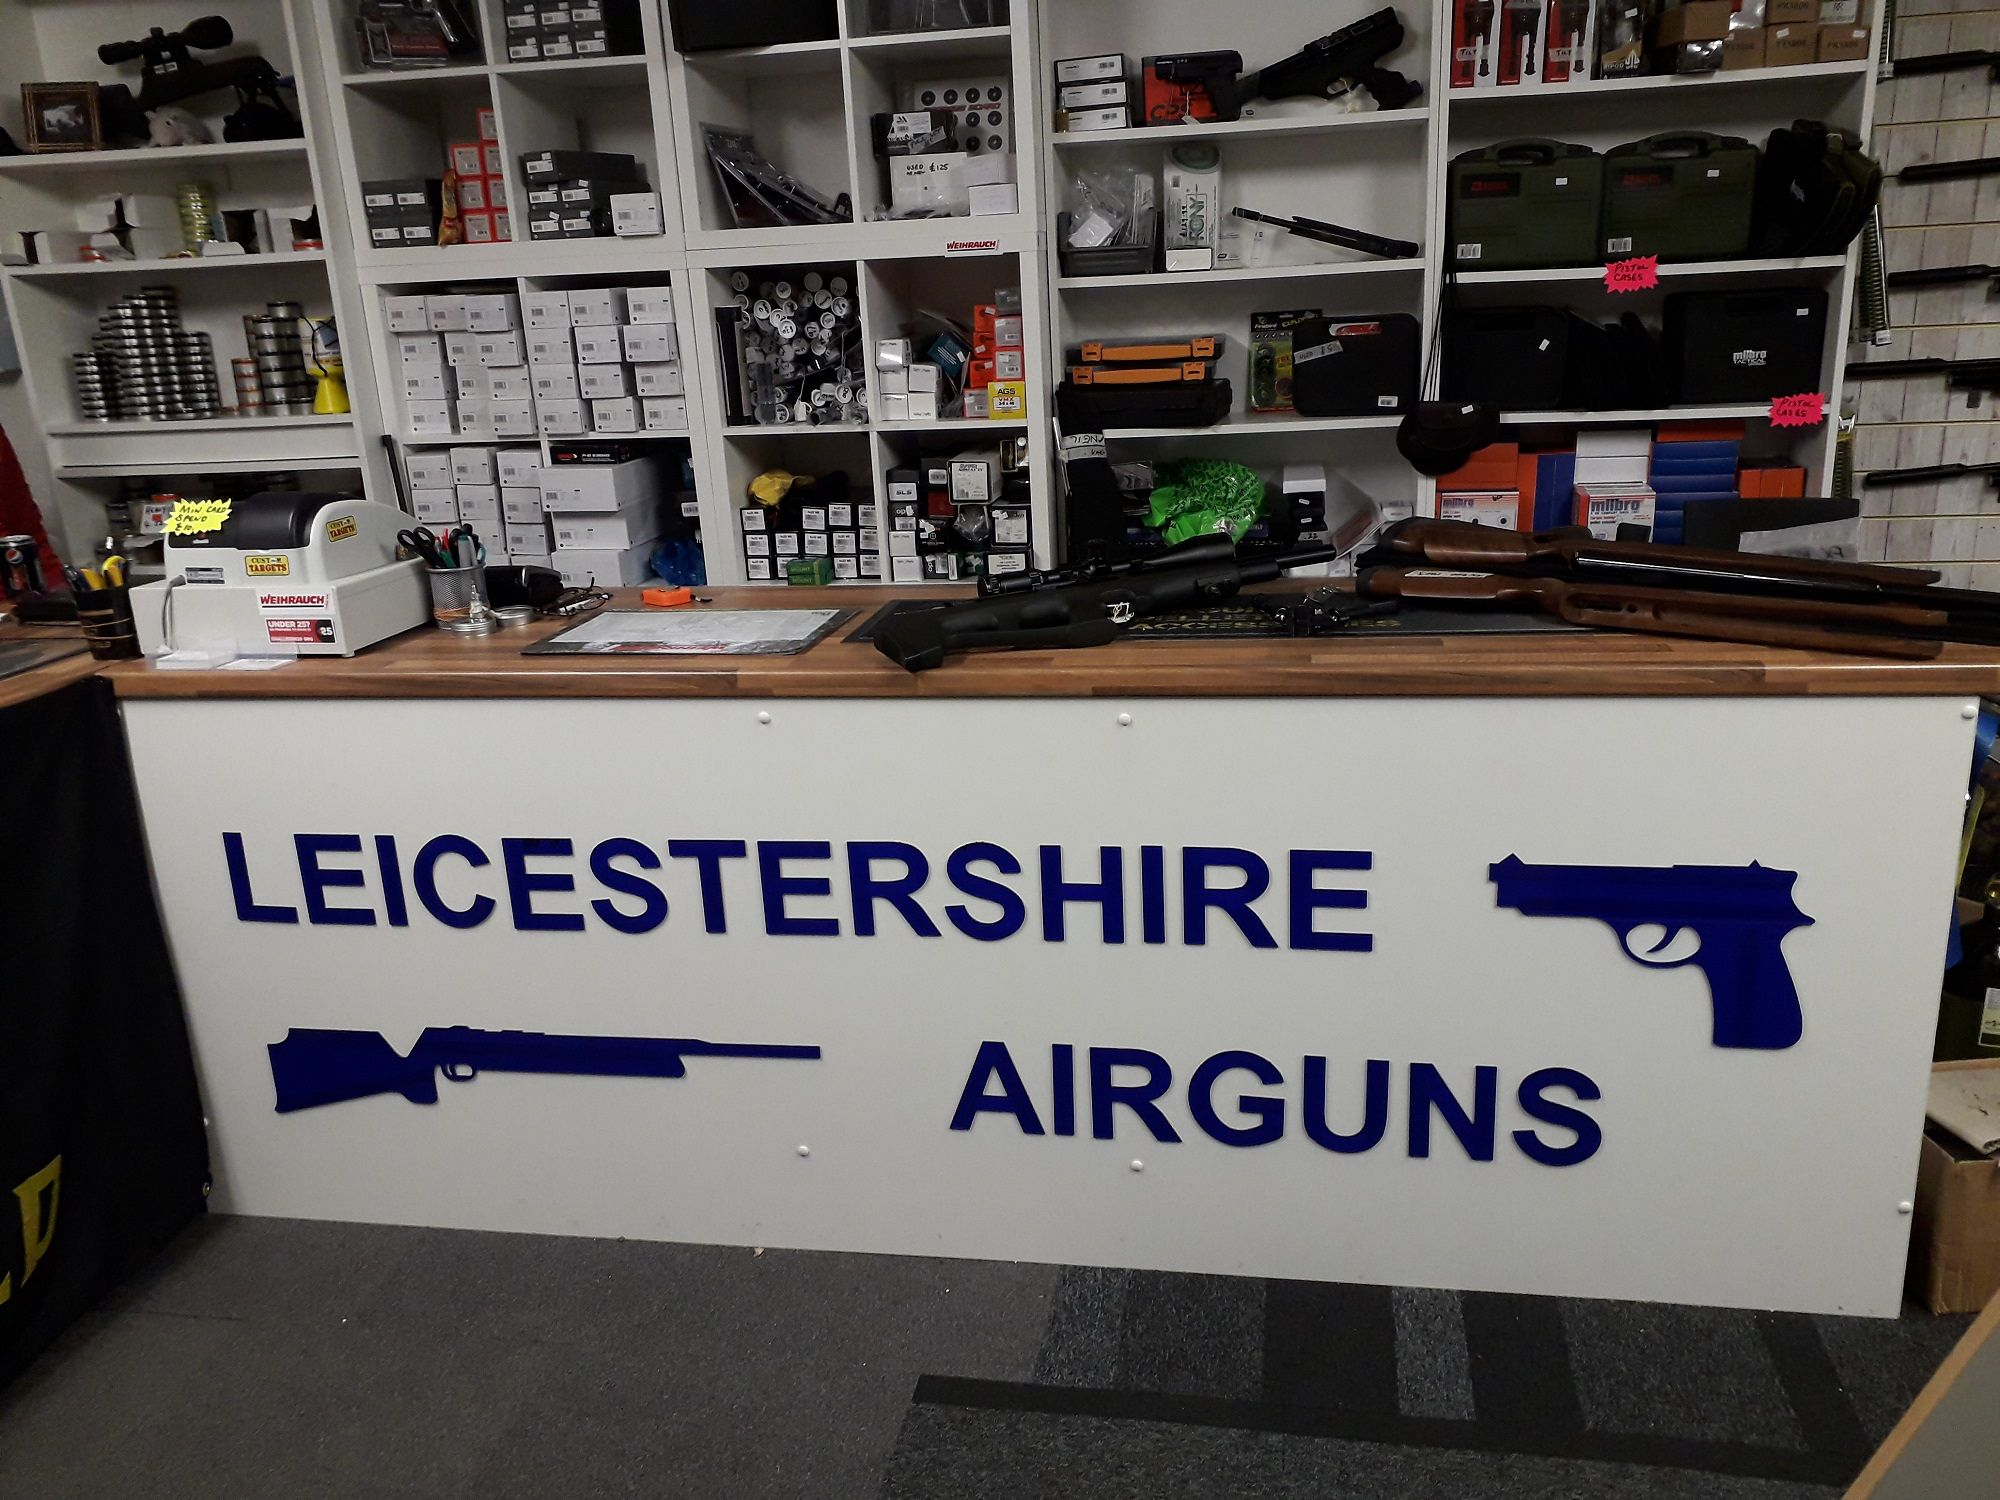 Leicestershire Airguns